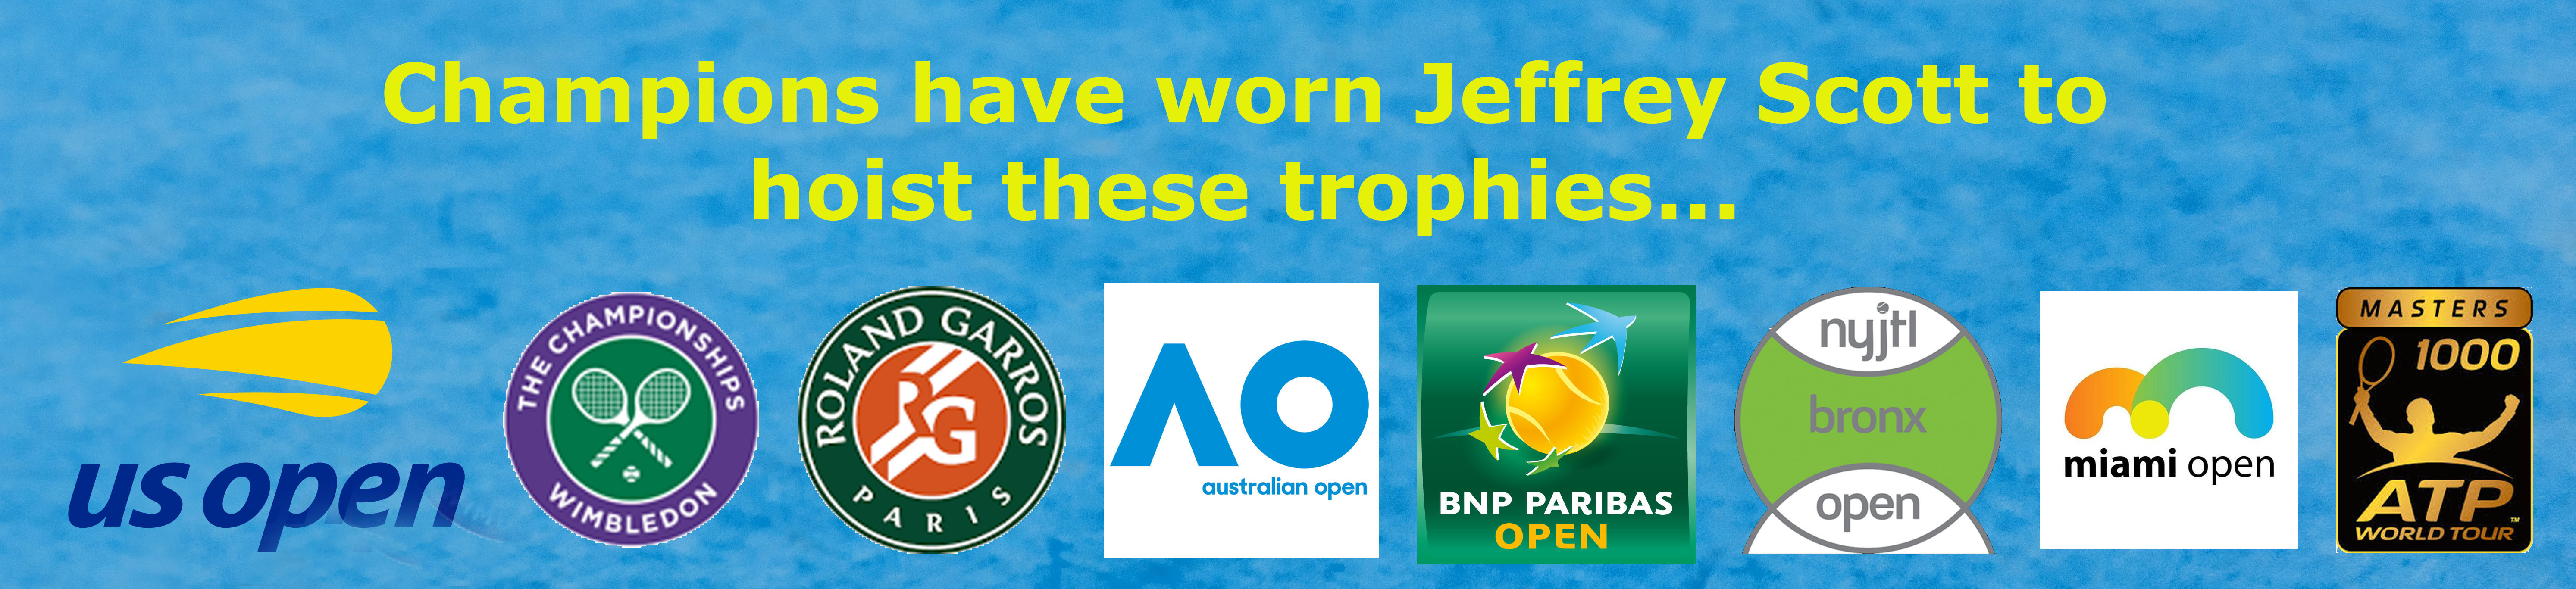 tennis-winners-banner-1.jpg